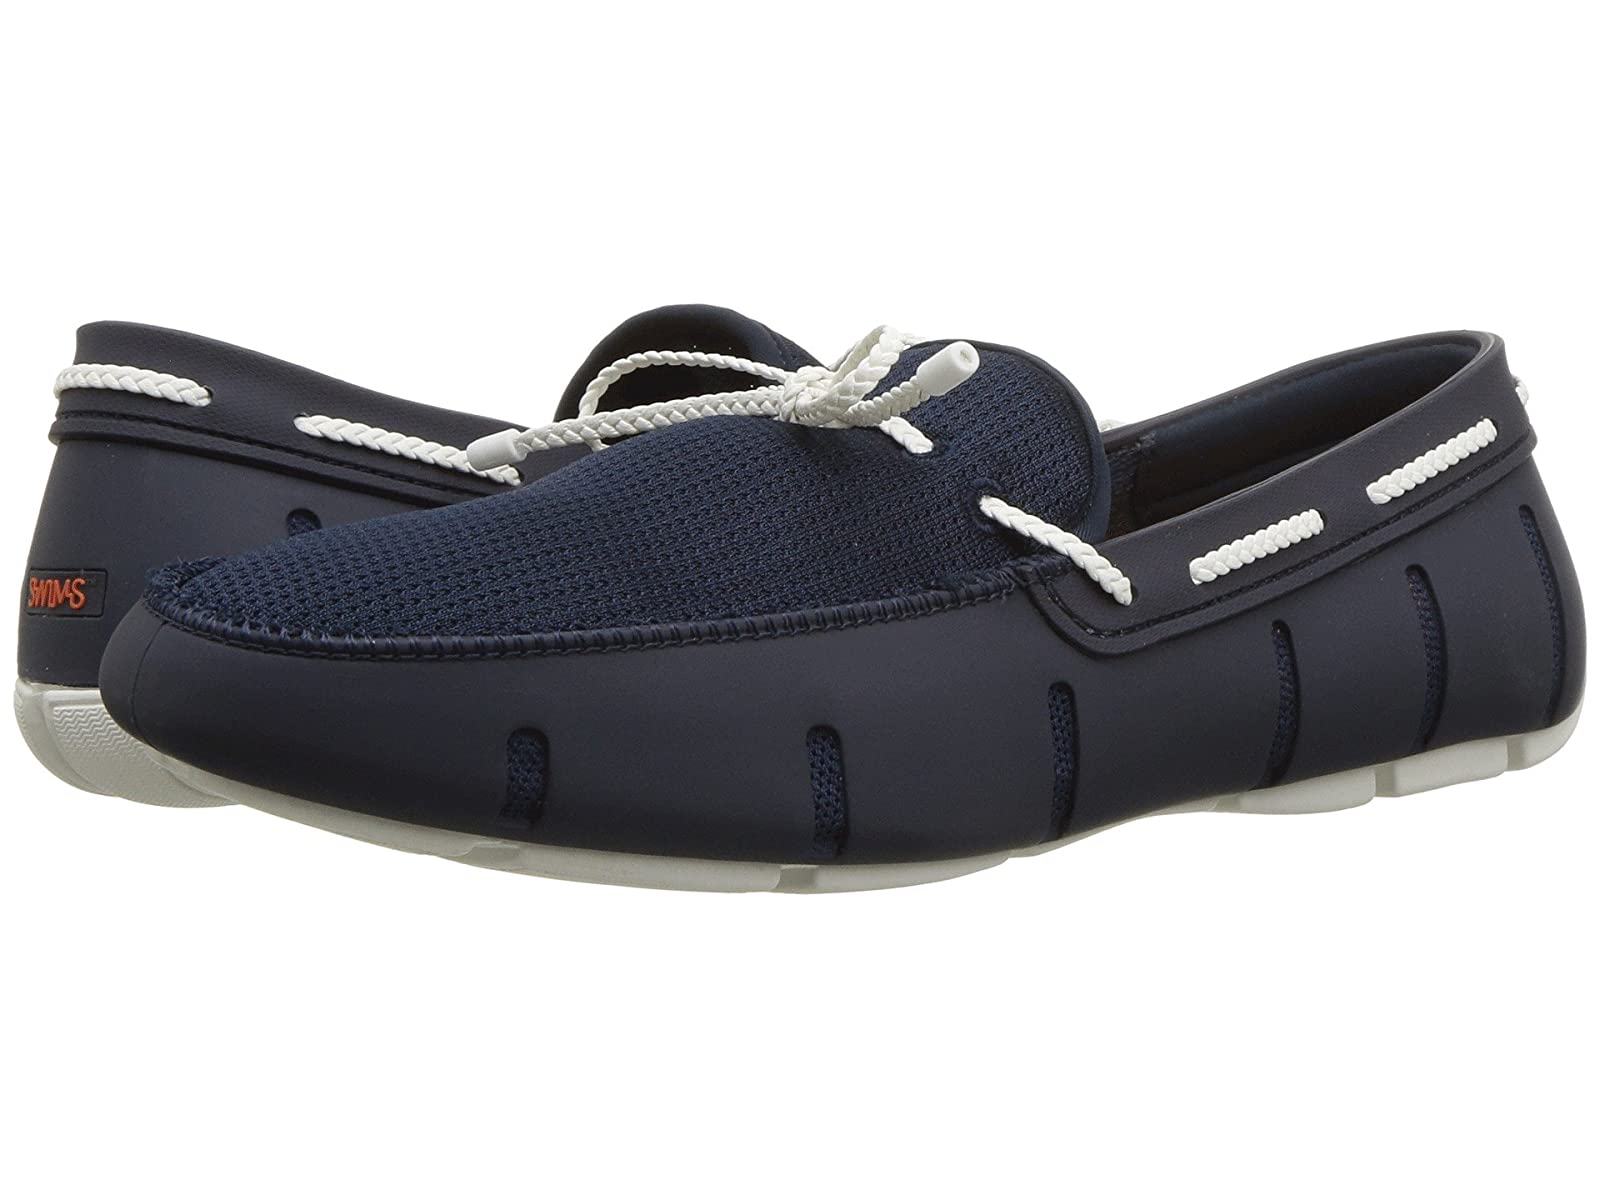 SWIMS Braided Lace LoaferAtmospheric grades have affordable shoes